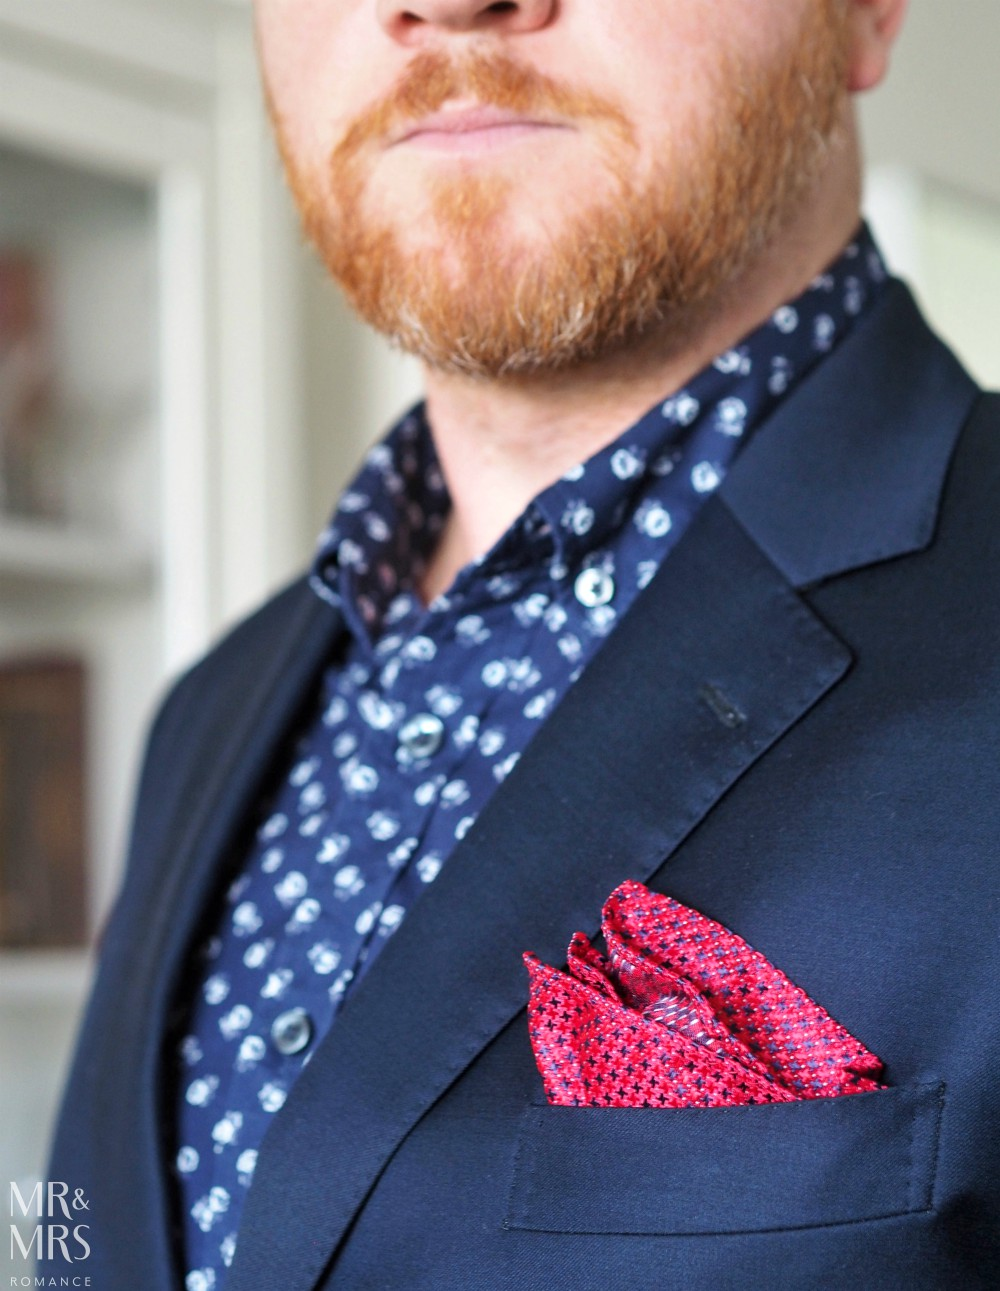 Valentine's Day gifts men's style - Buckle 1922 red pocket square - MRR